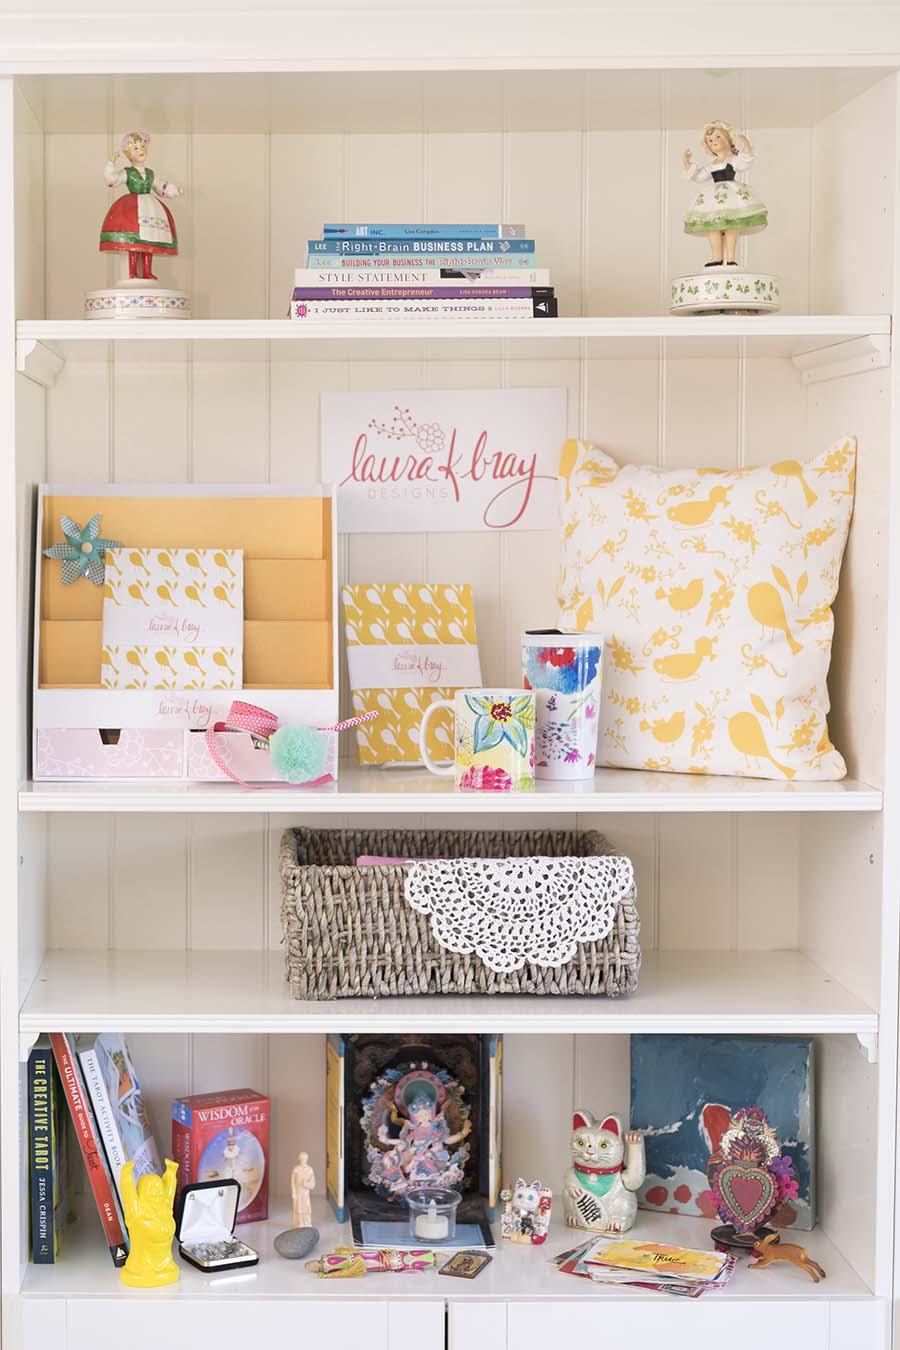 Laura Bray Designs Studio Tour